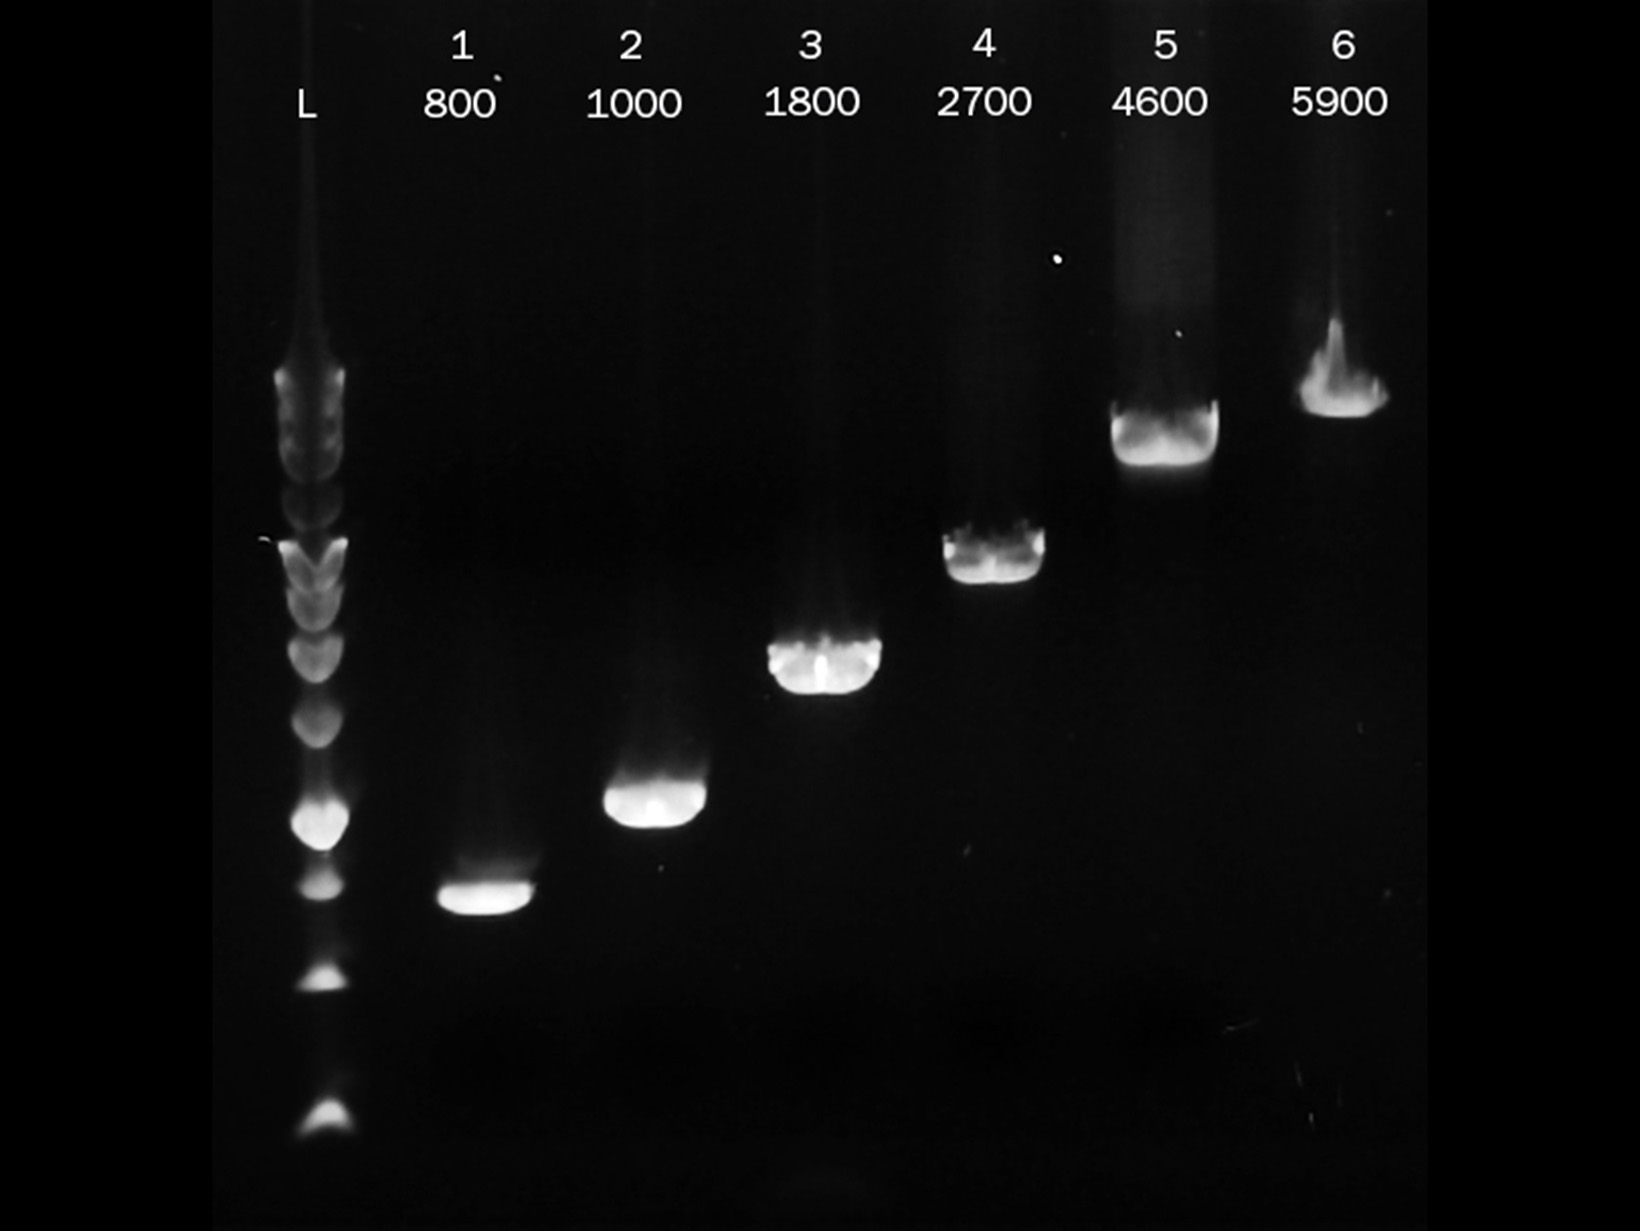 Gel image showing PCRBIO Ultra Polymerase successfully amplifying DNA fragments ranging from 0.8kb to 5.9kb in length